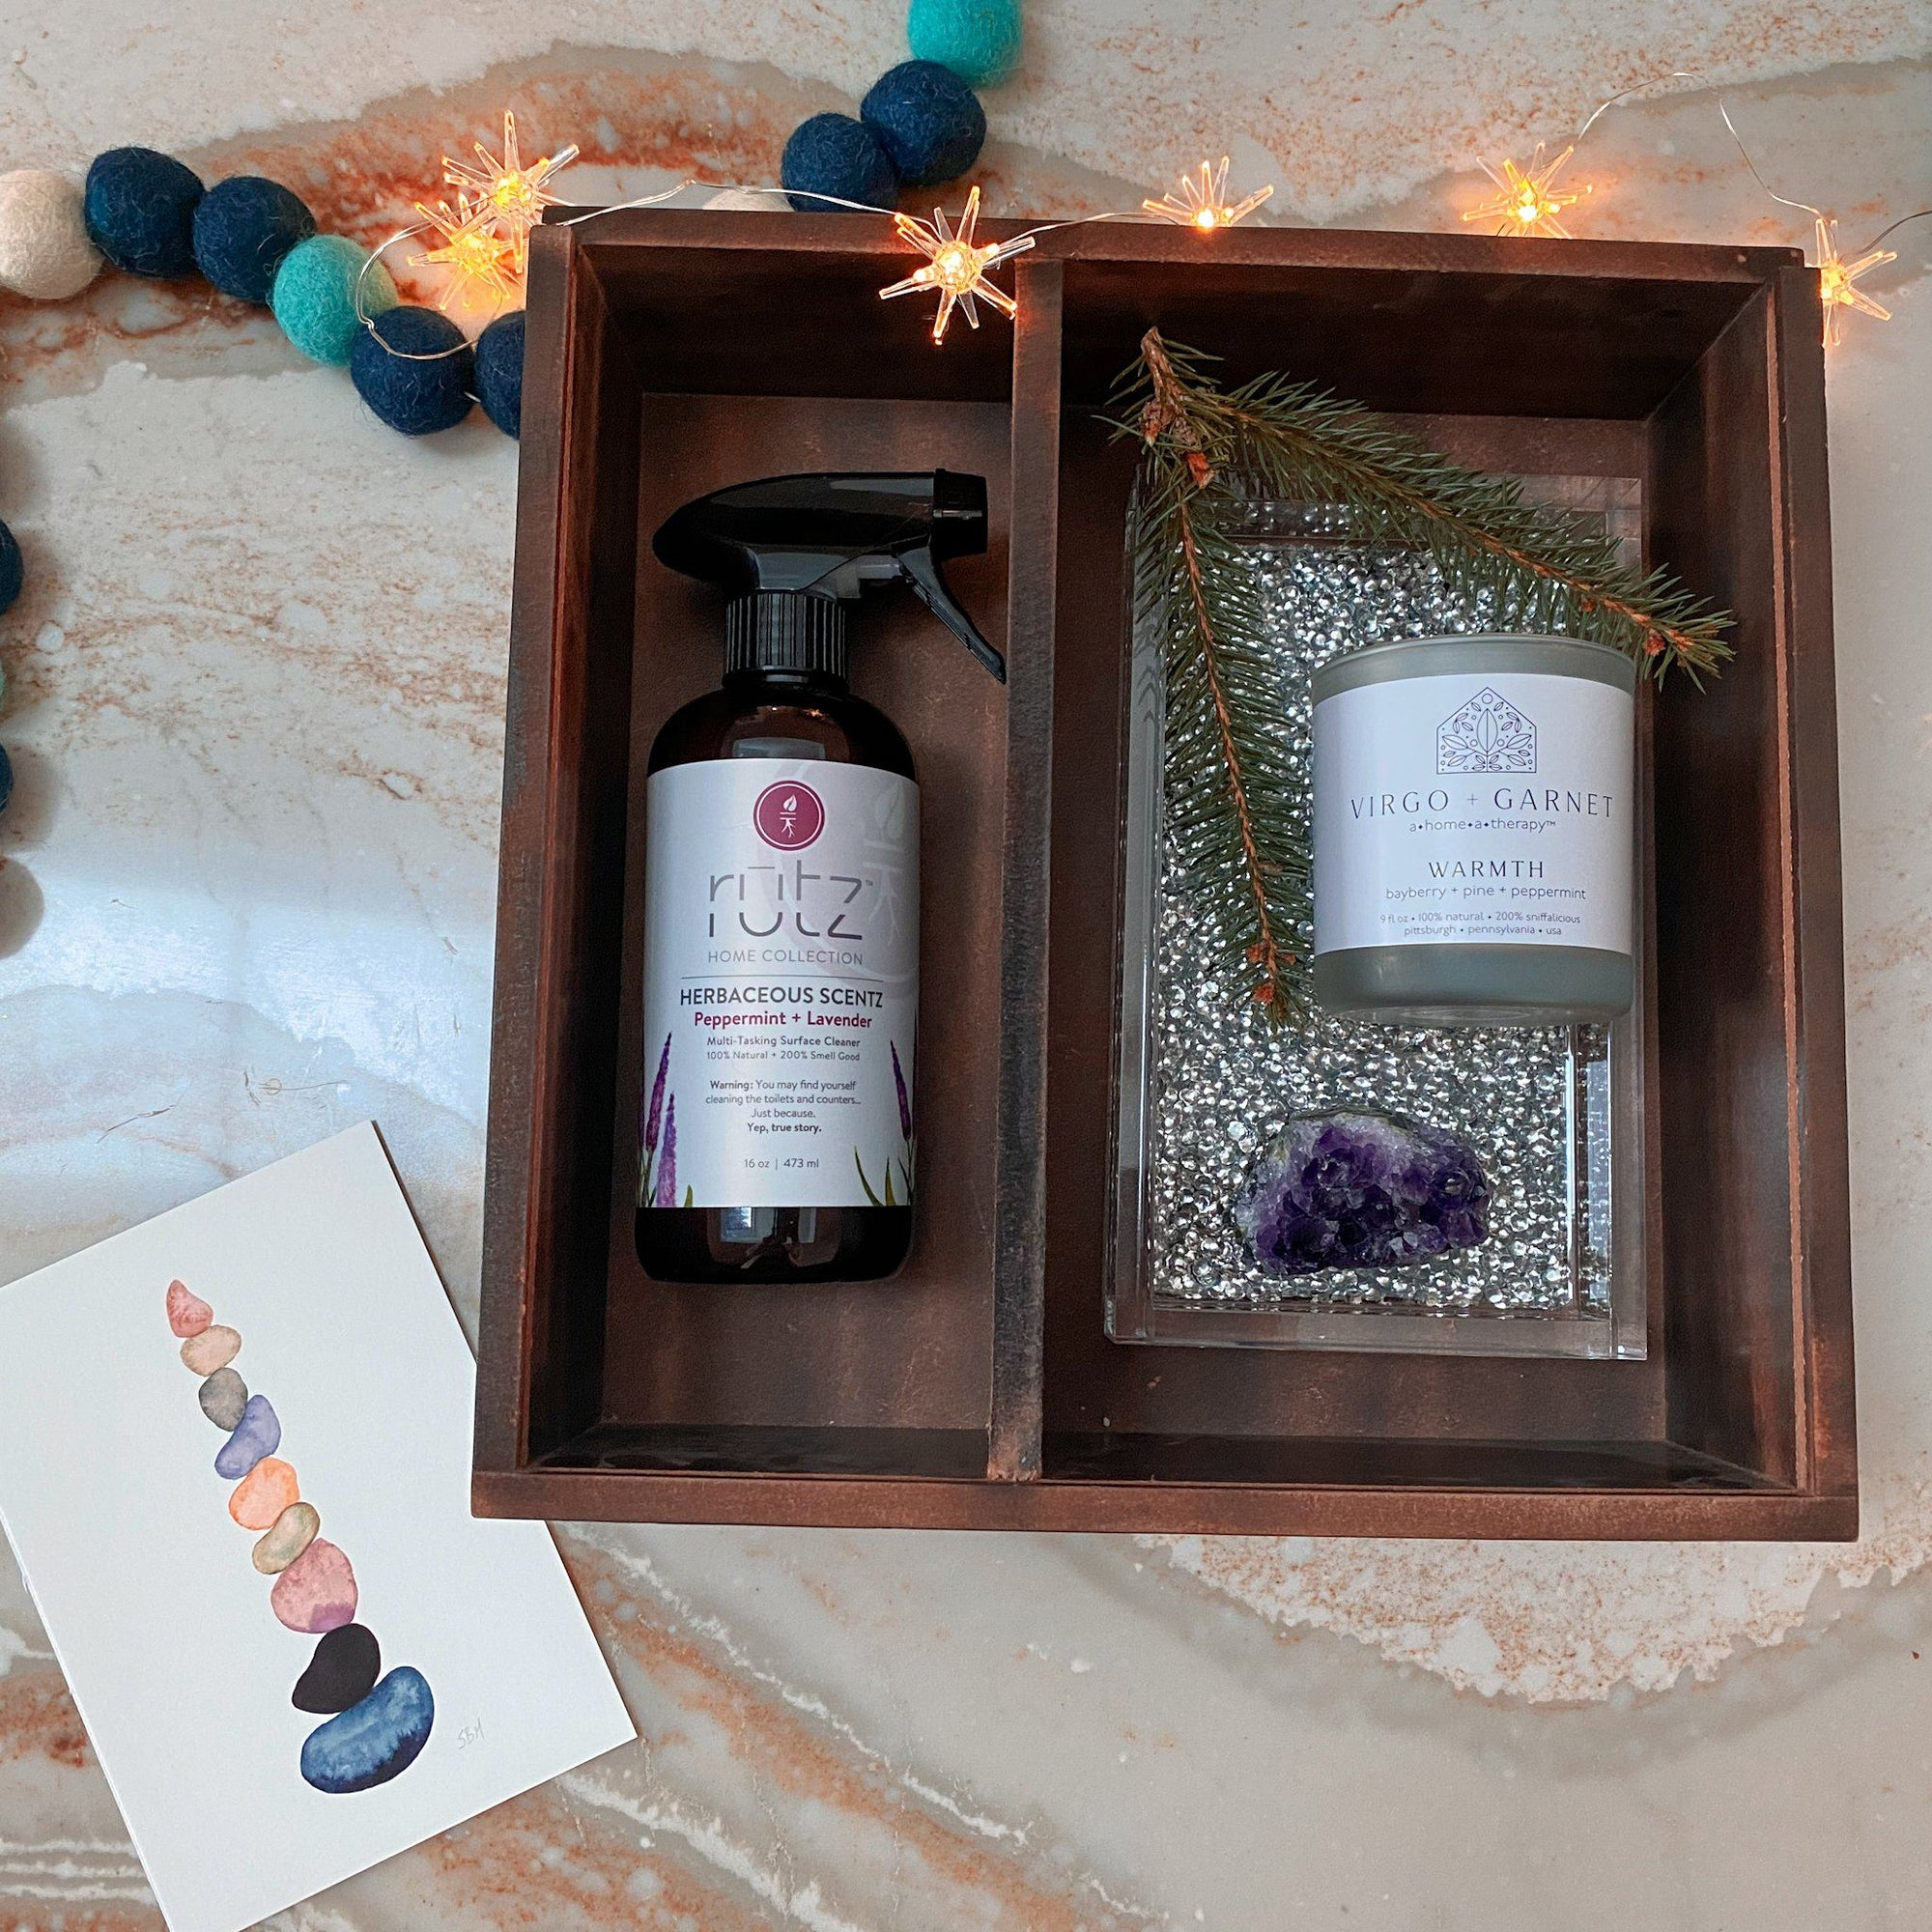 Silver Acrylic Tray Gift Set gift box Virgo + Garnet | Beautifully Balanced Living